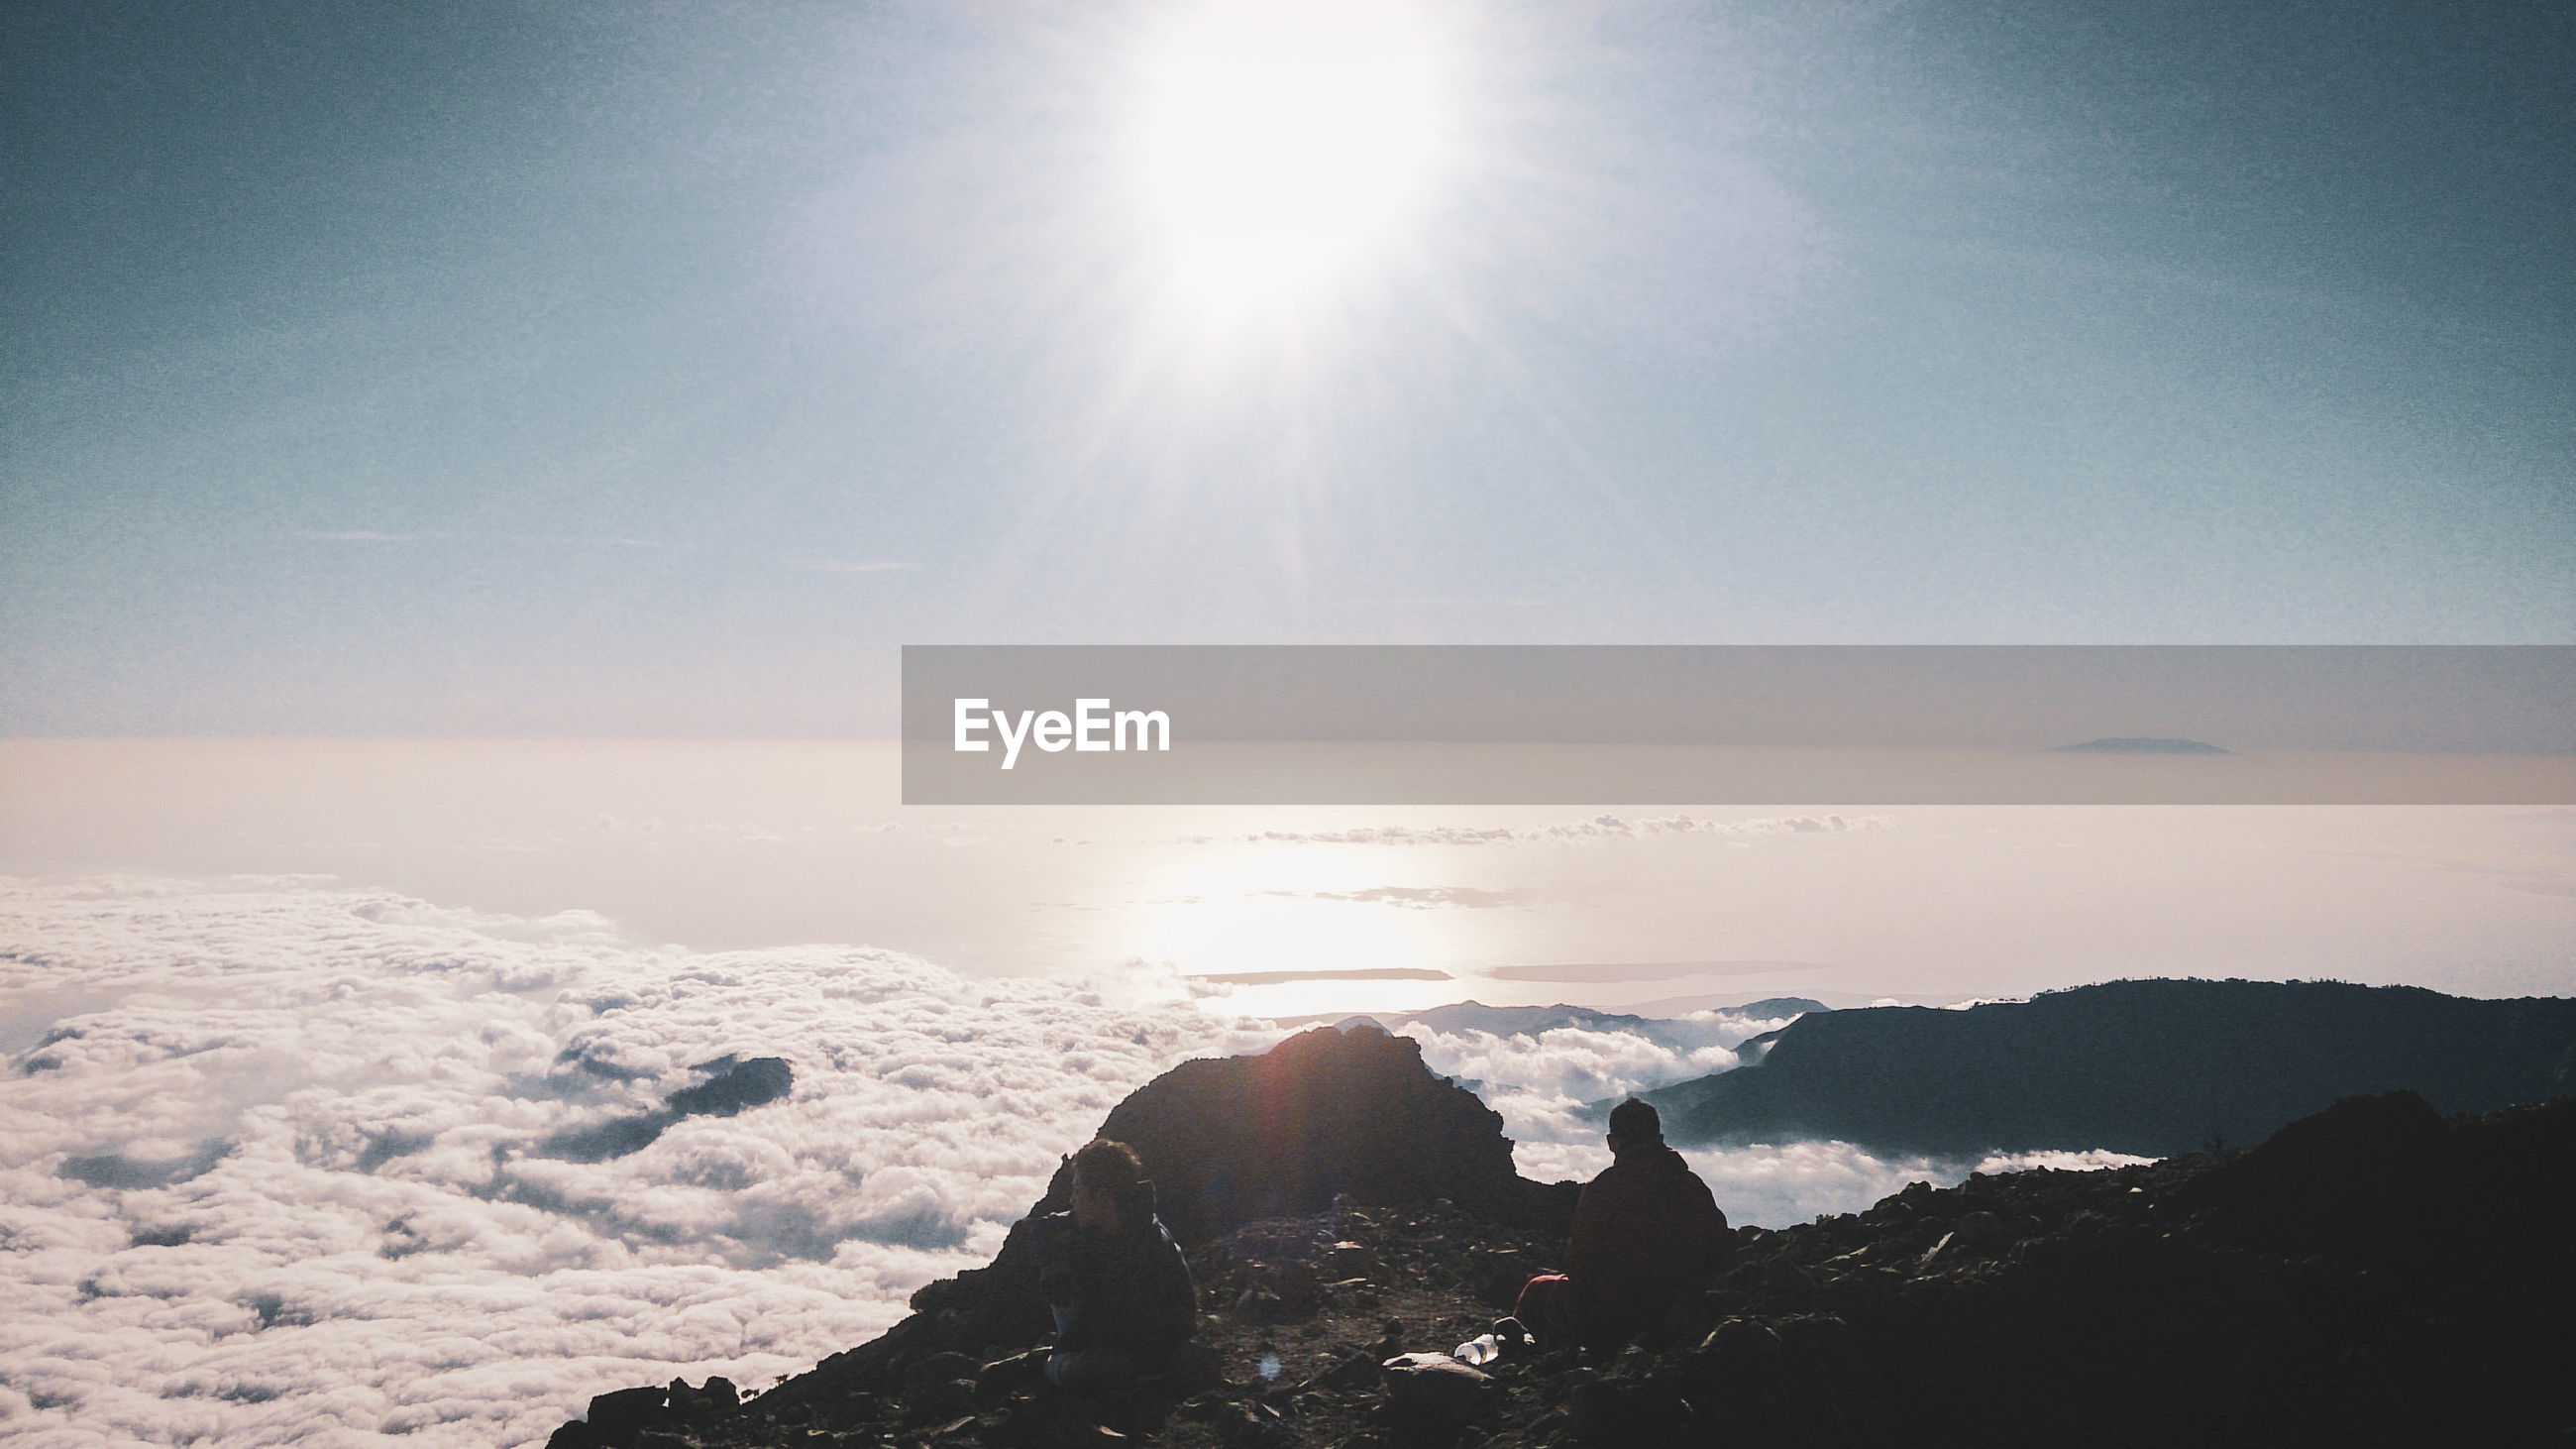 SCENIC VIEW OF MOUNTAIN AGAINST SKY DURING SUNNY DAY